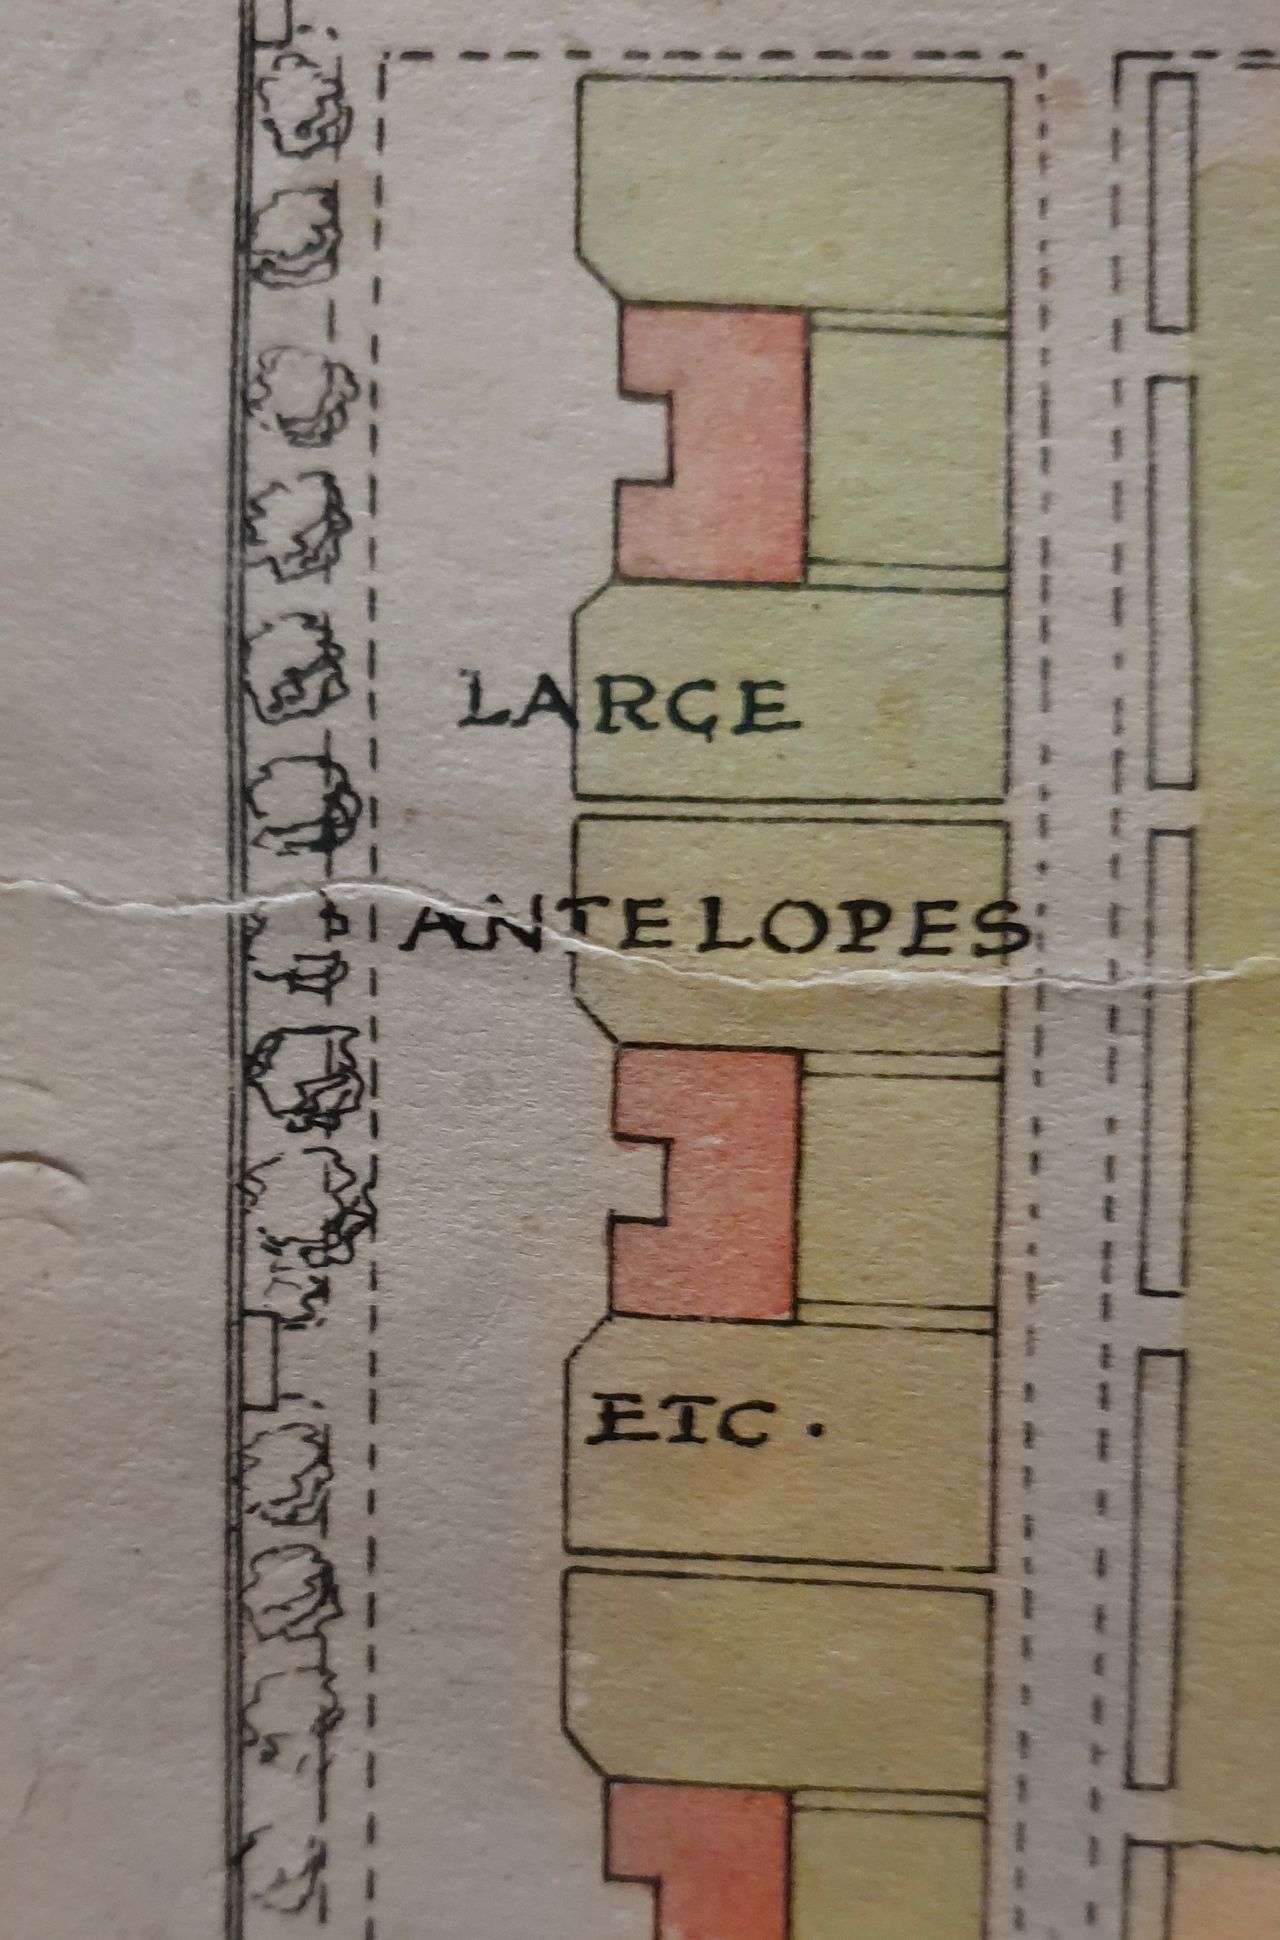 "Close-up of the plan for the Scottish Zoological Garden. Sections of the plan are coloured yellow, green, red. In squares and other shapes across the plan, denoting which animals are where, animal names are written.  This is a close up of some enclosures across which is simply written ""large antelopes etc."""